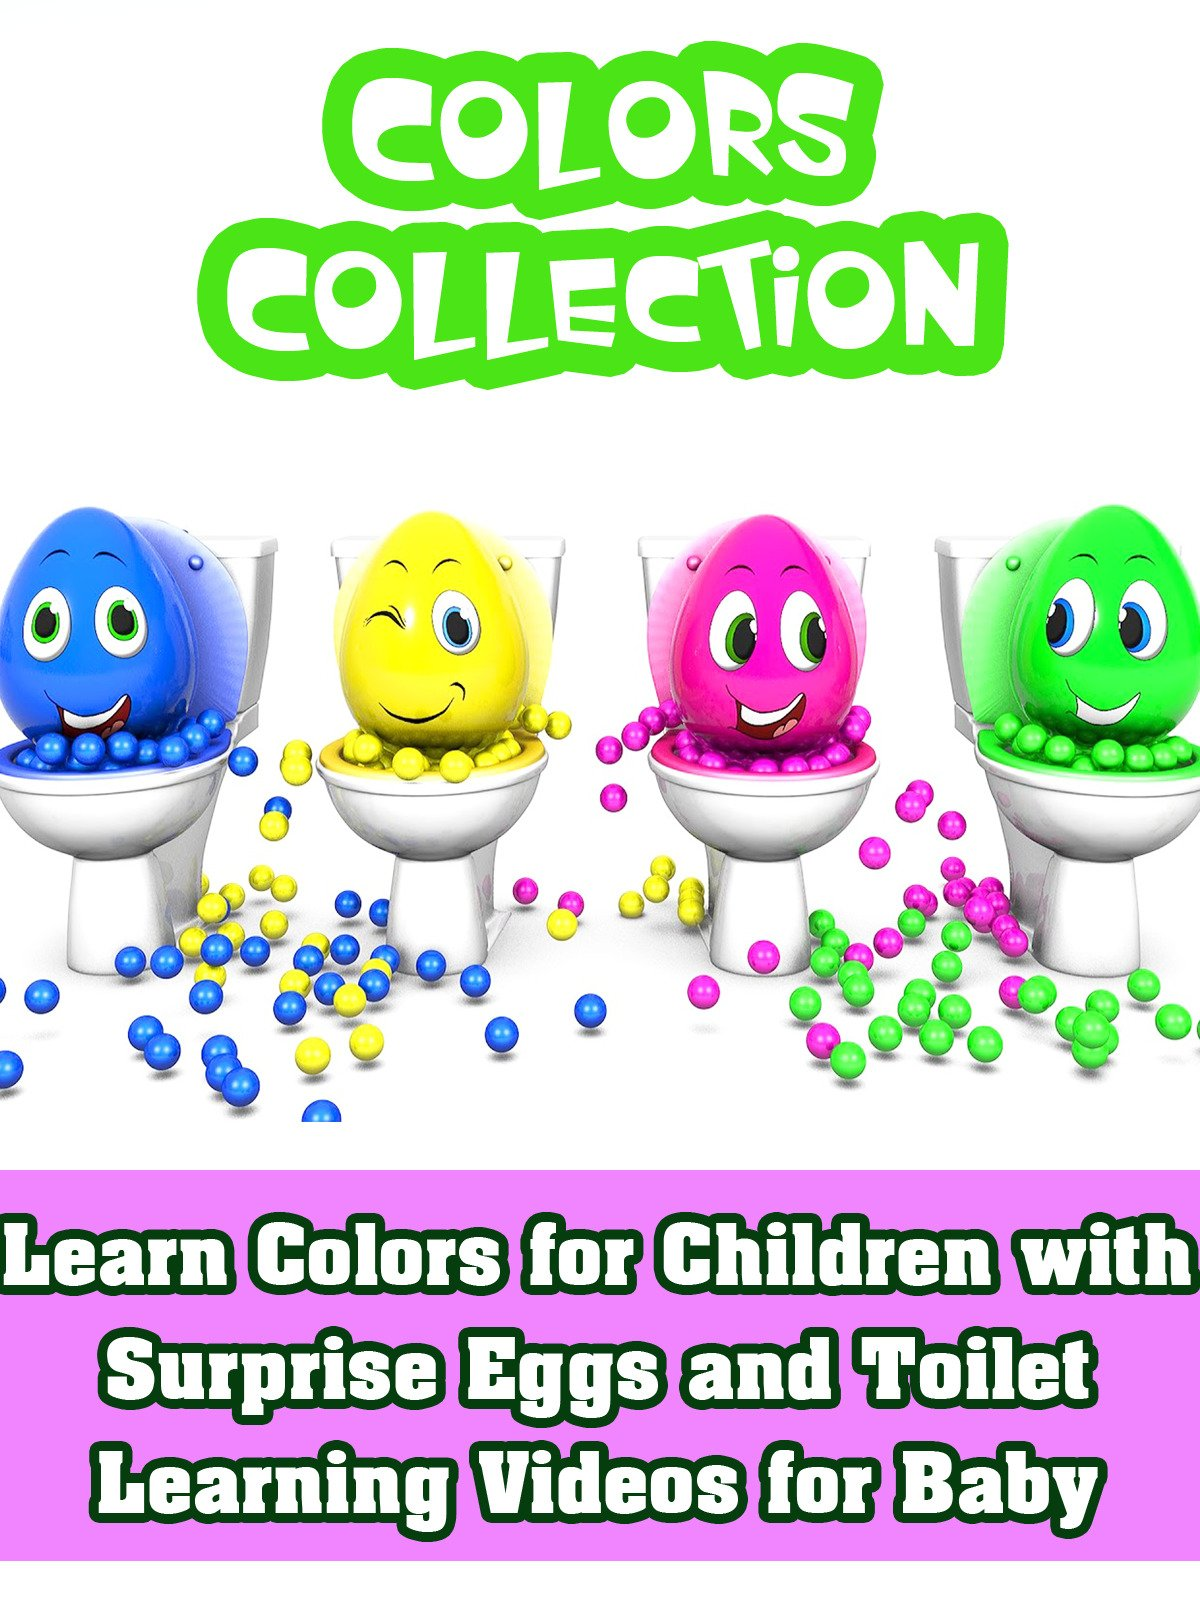 Learn Colors for Children with Surprise Eggs and Toilet Learning Videos for Baby